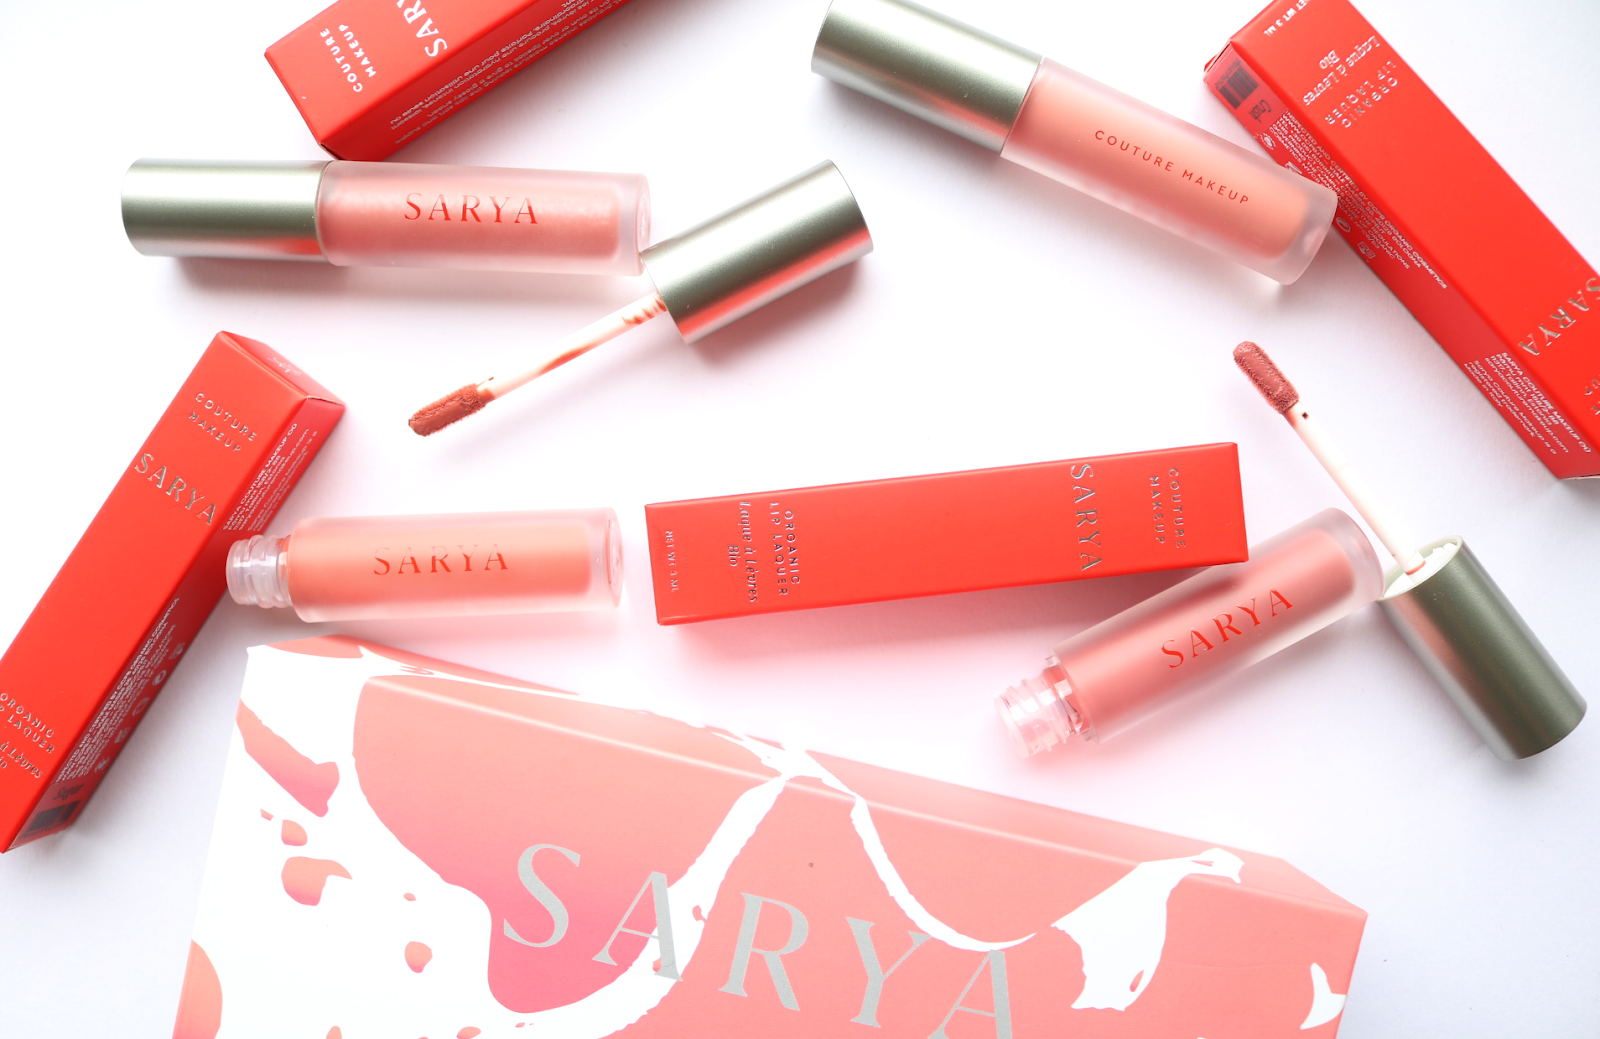 Organic Makeup: Sarya Couture Makeup Lip Lacquers & Lip Elixir Oil - Review & Swatches